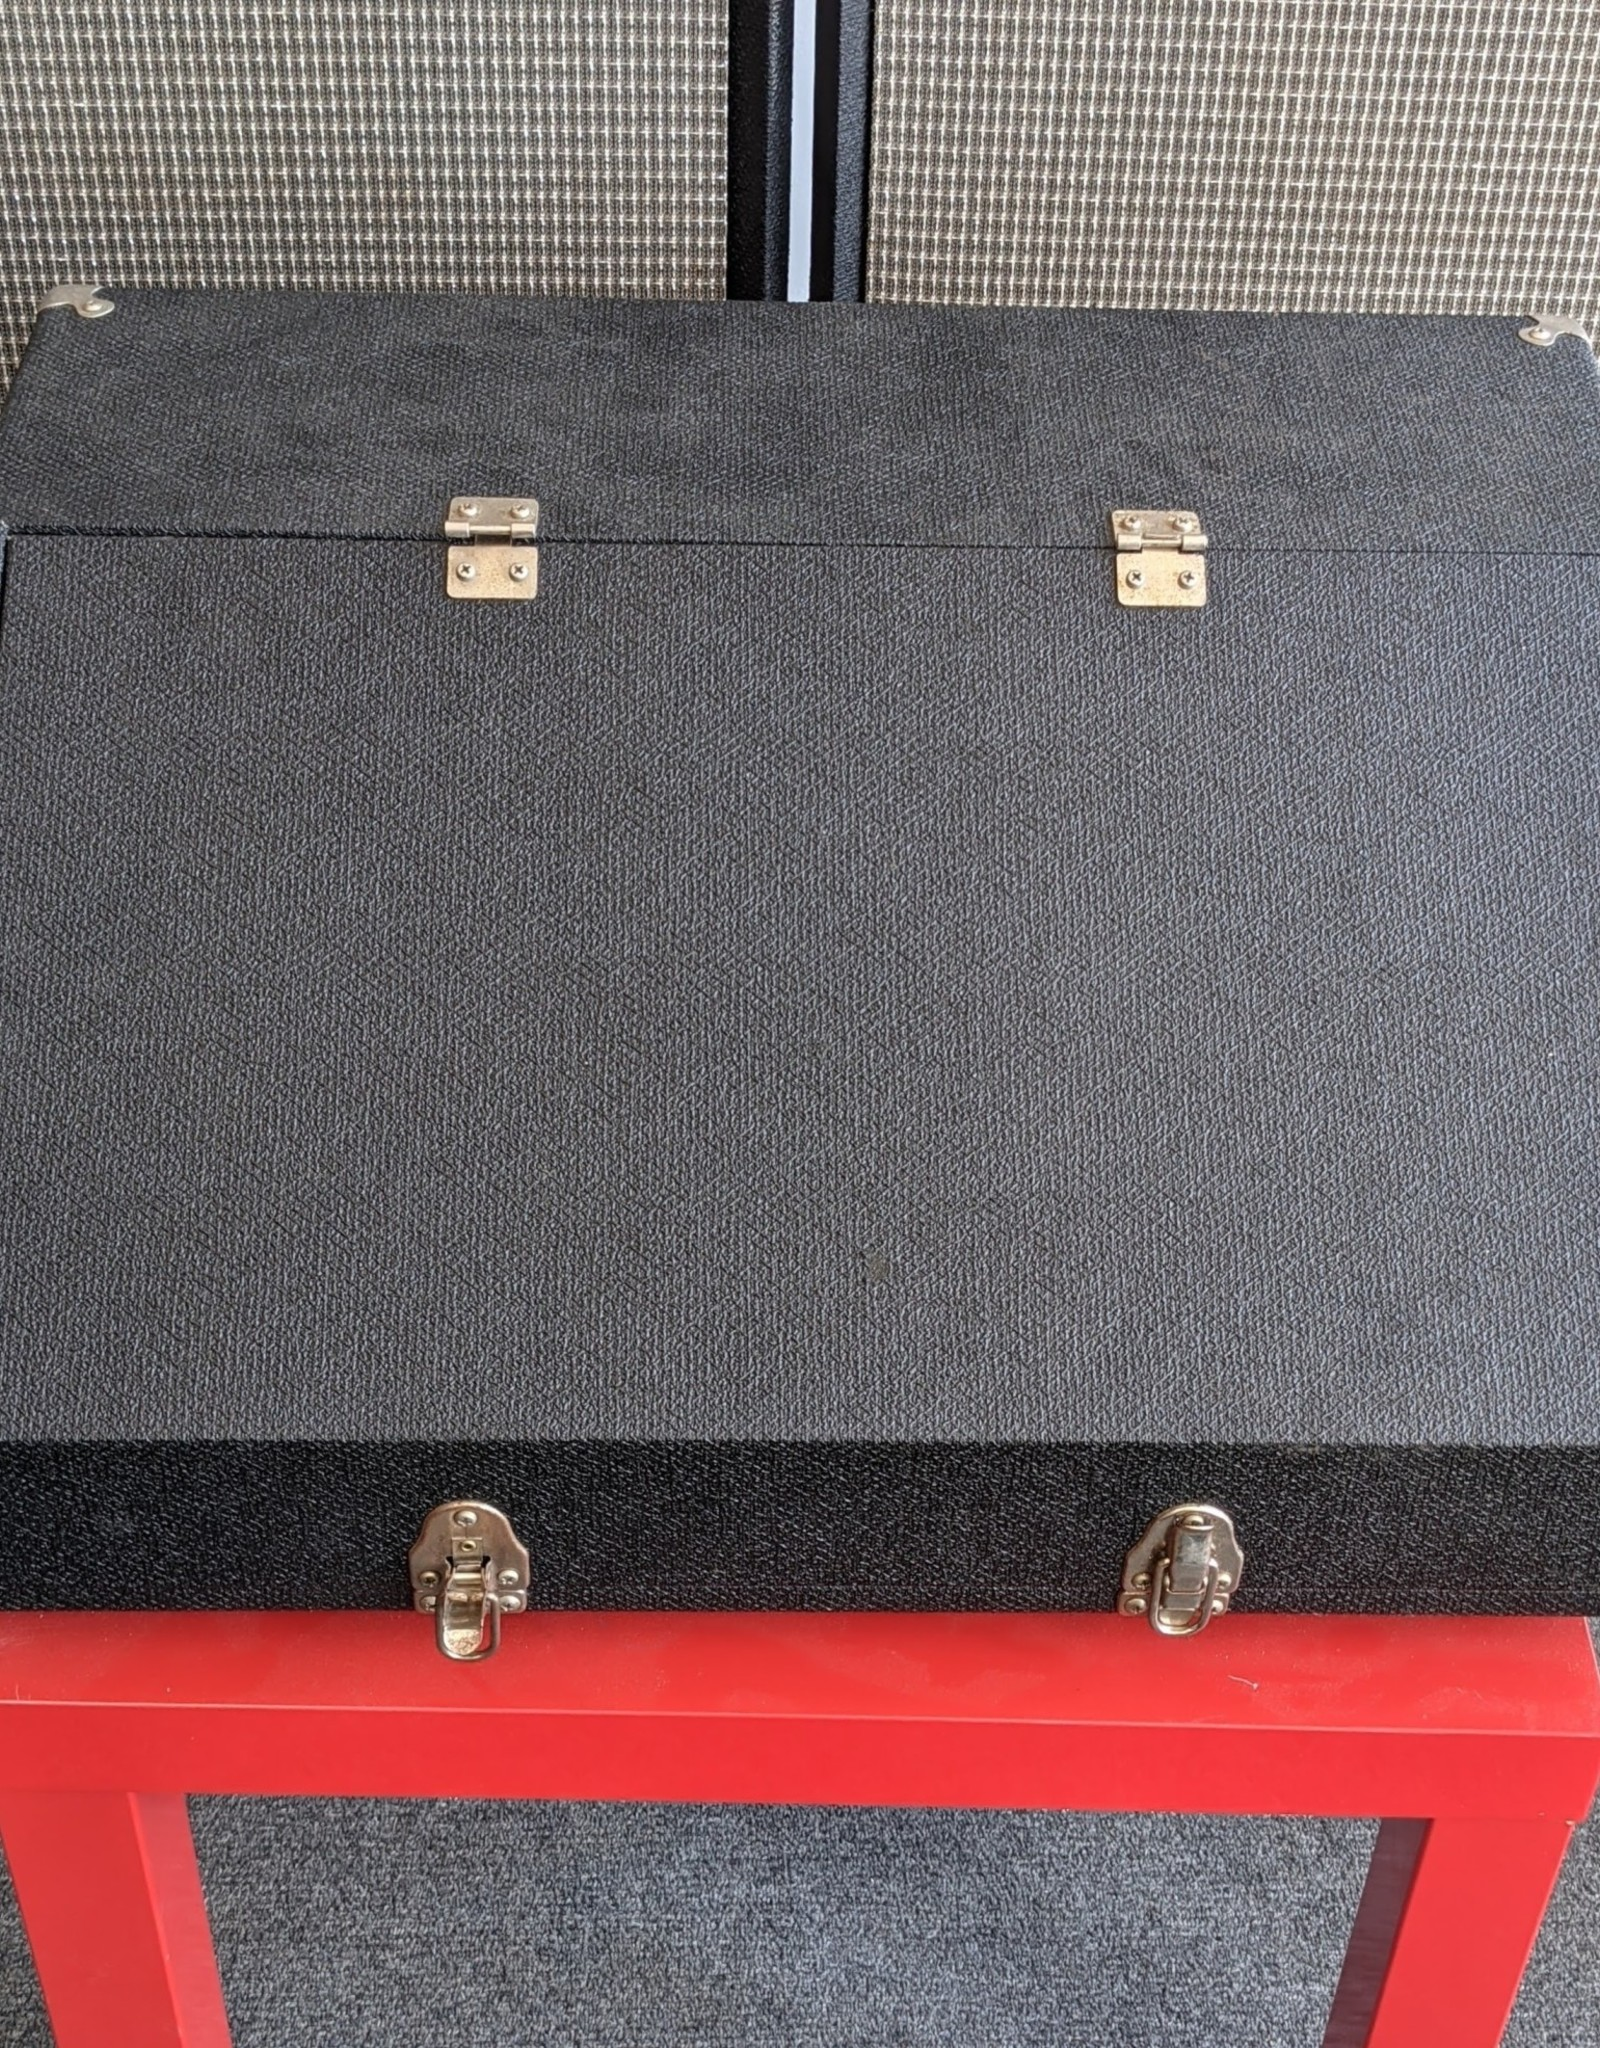 Sunn 70's Sunn Concert Controller Mixer with 410SR Speaker Cabinets and Original Paperwork, Used